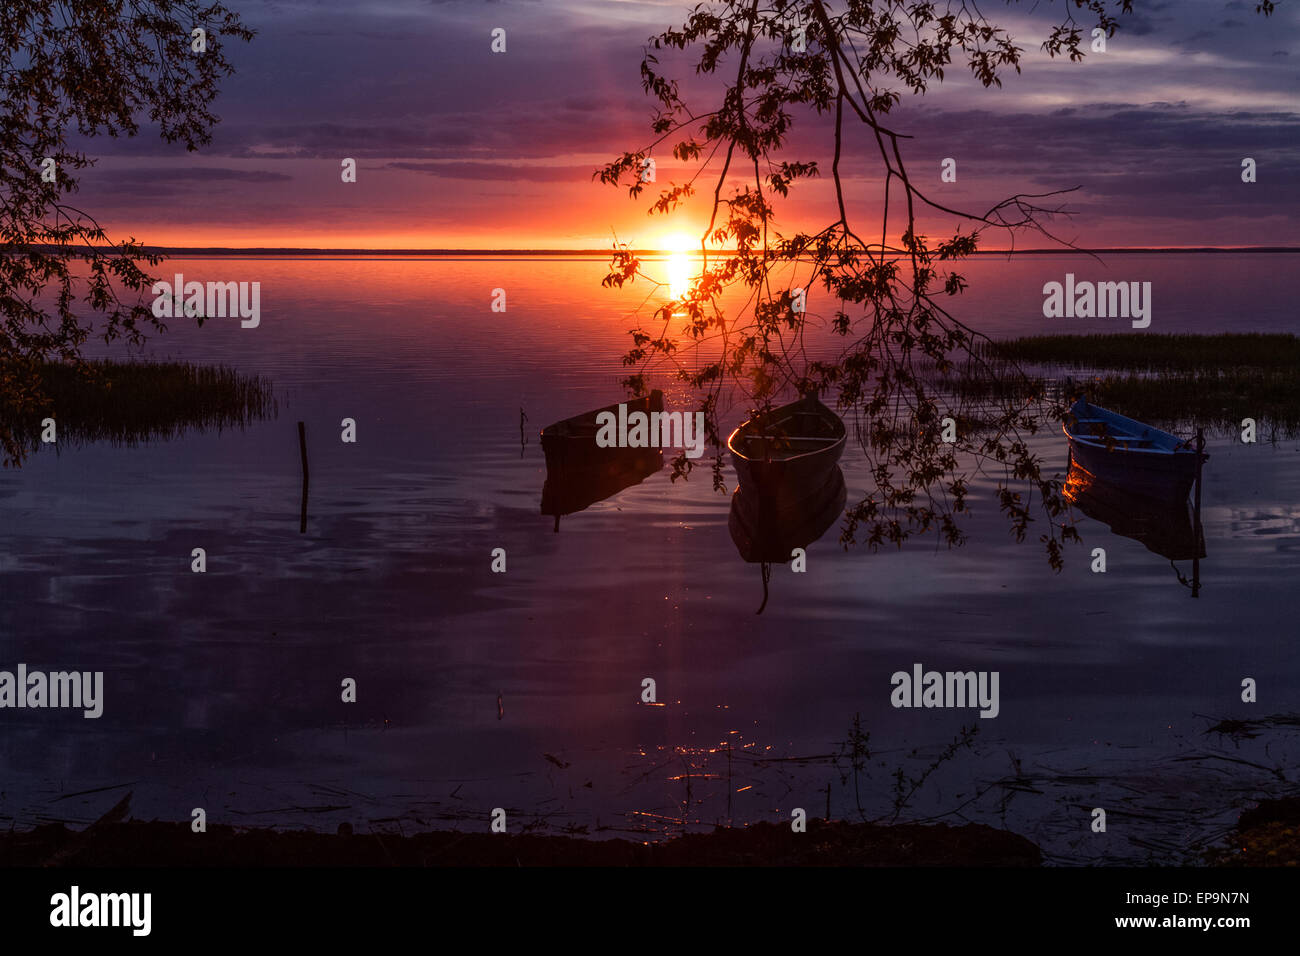 three boats on pier expect the owners from a decline till the dawn - Stock Image